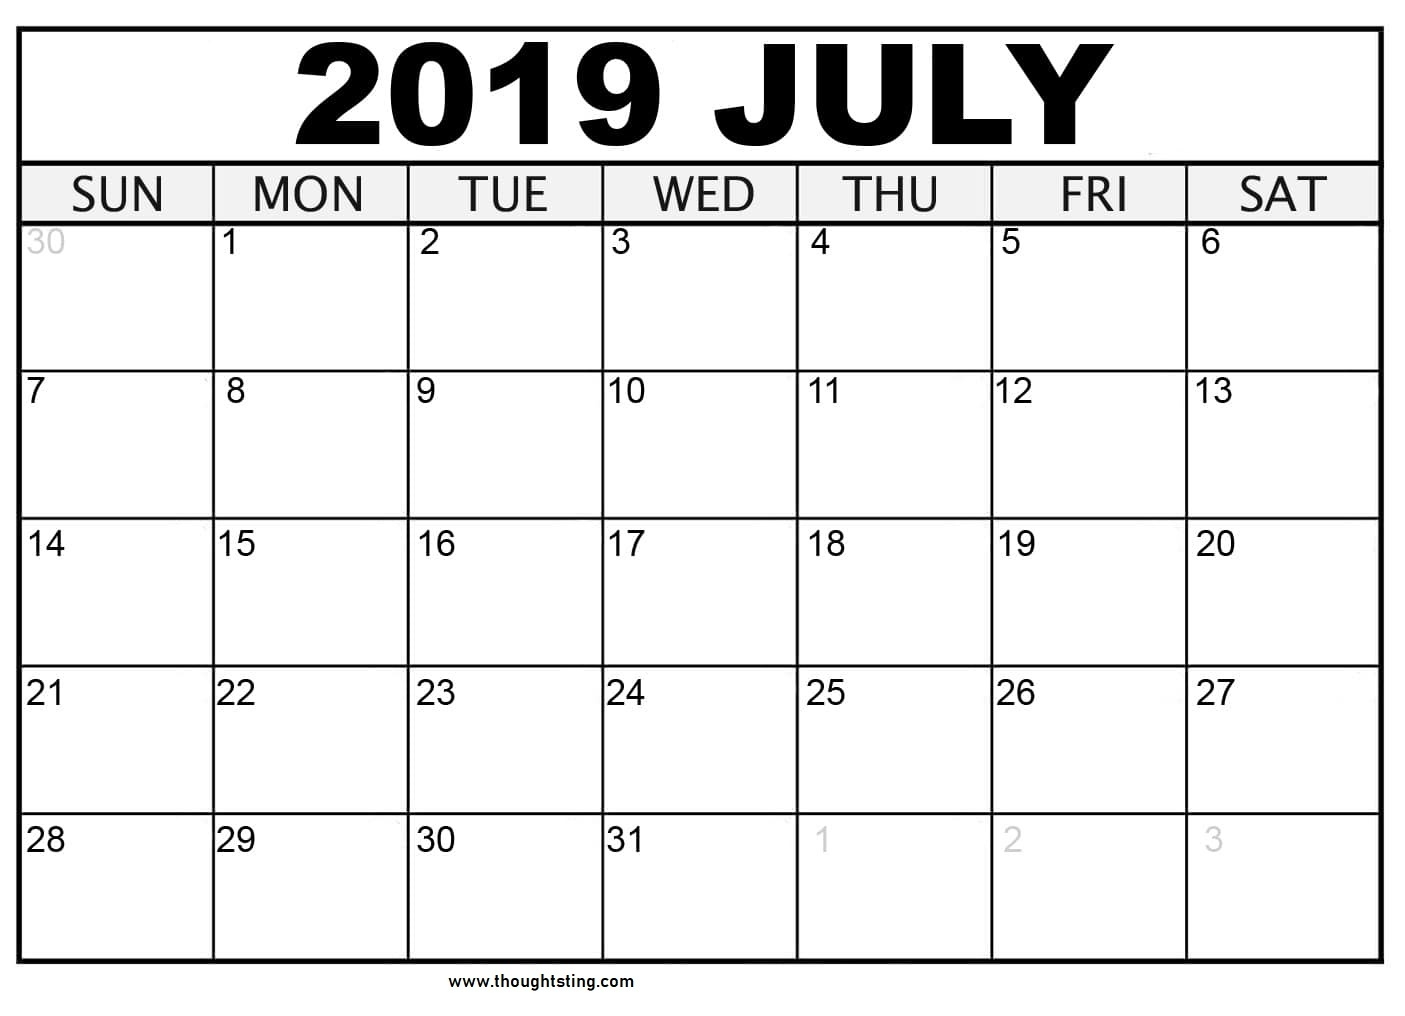 July 2019 Calendar Printable One Page Template - Free Printable_Calendar For Printing July 2019